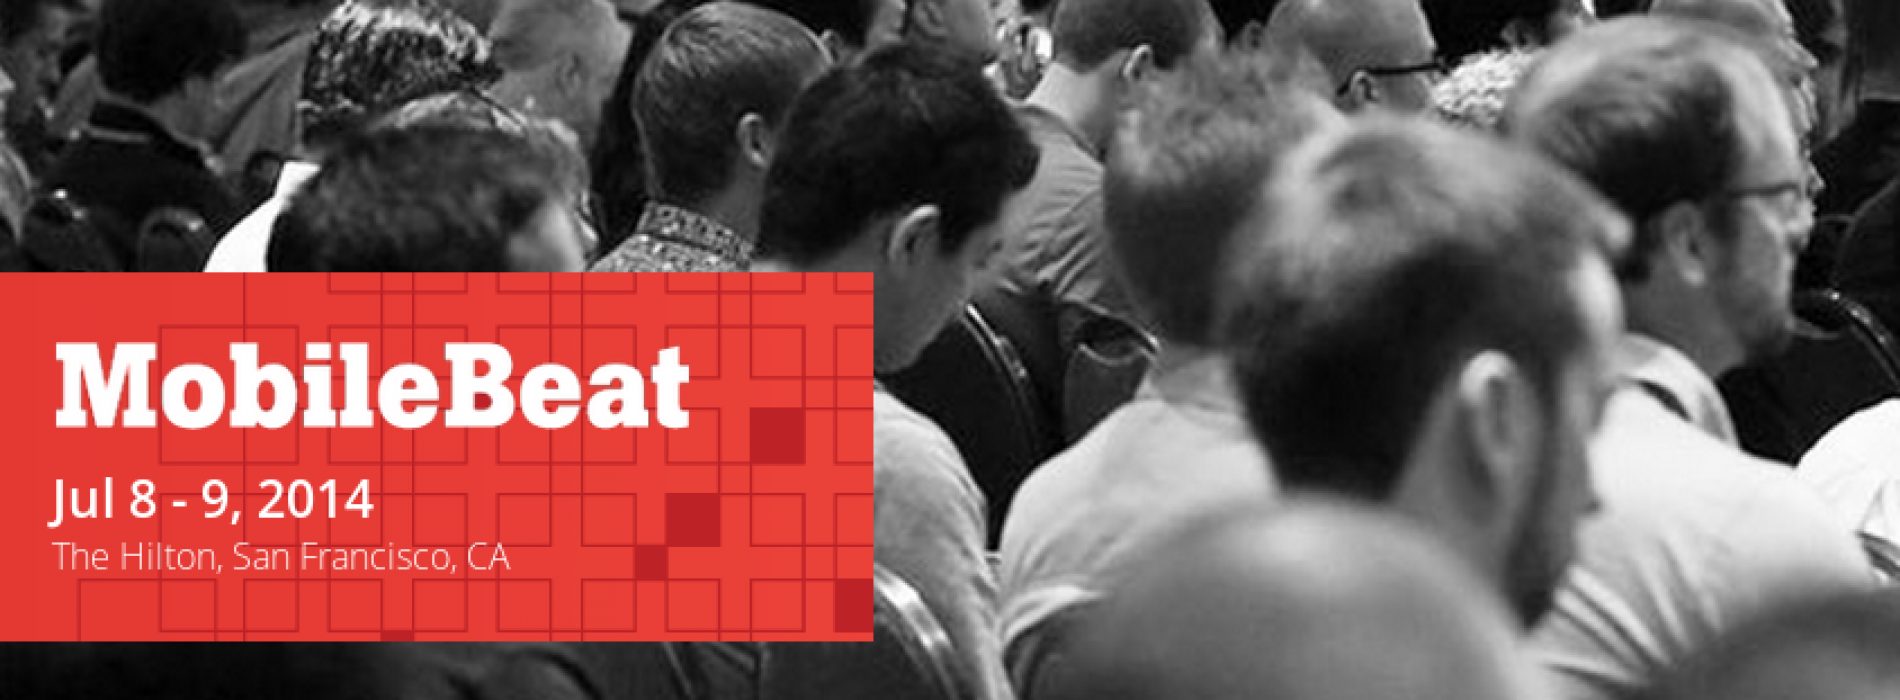 MobileBeat 2014 returns to San Francisco July 8-9